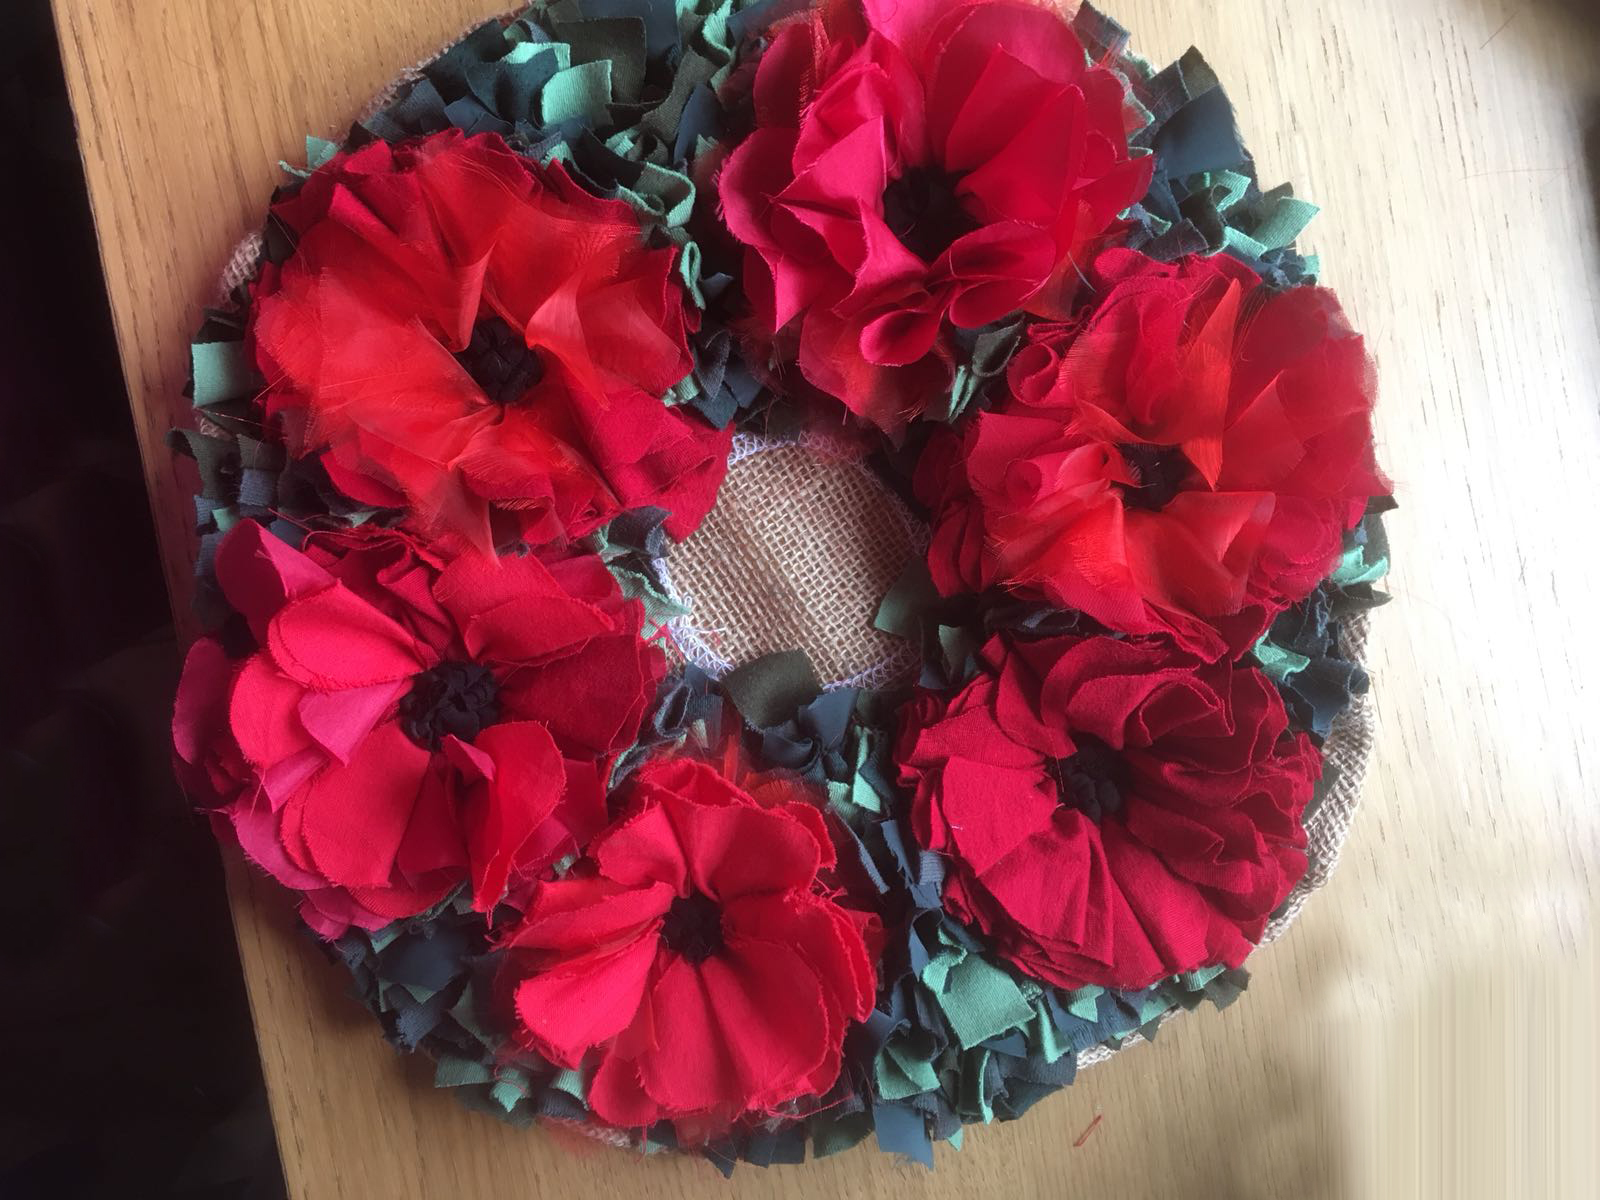 rag rug poppy wreath in red and green made using recycled fabrics